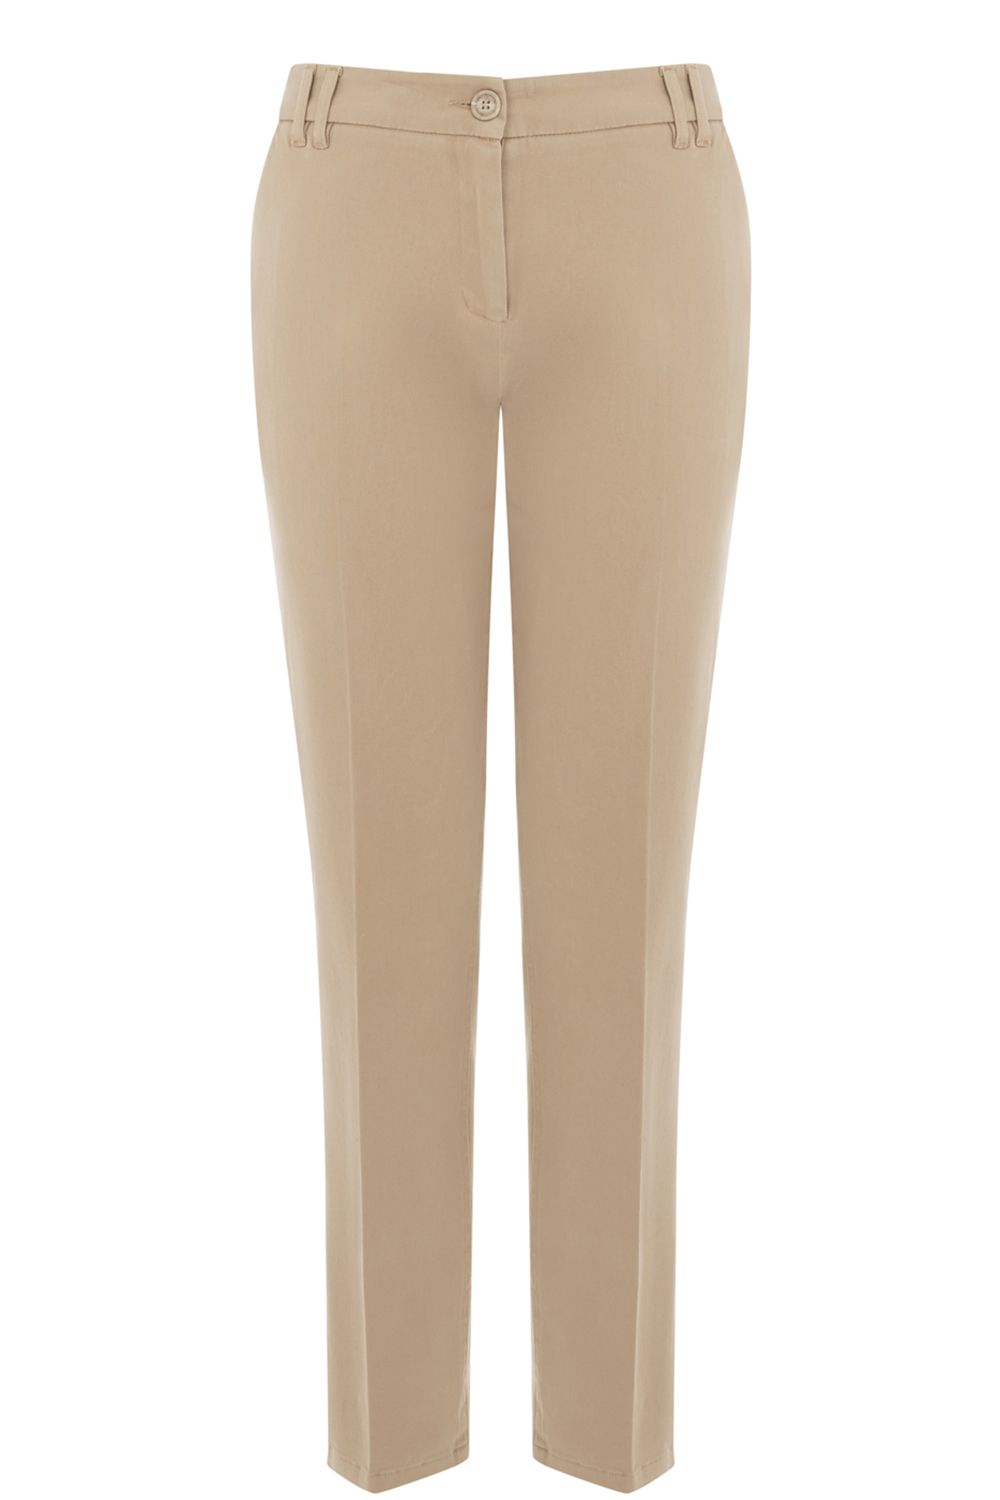 Oasis Emmy Chino Trouser, Neutral